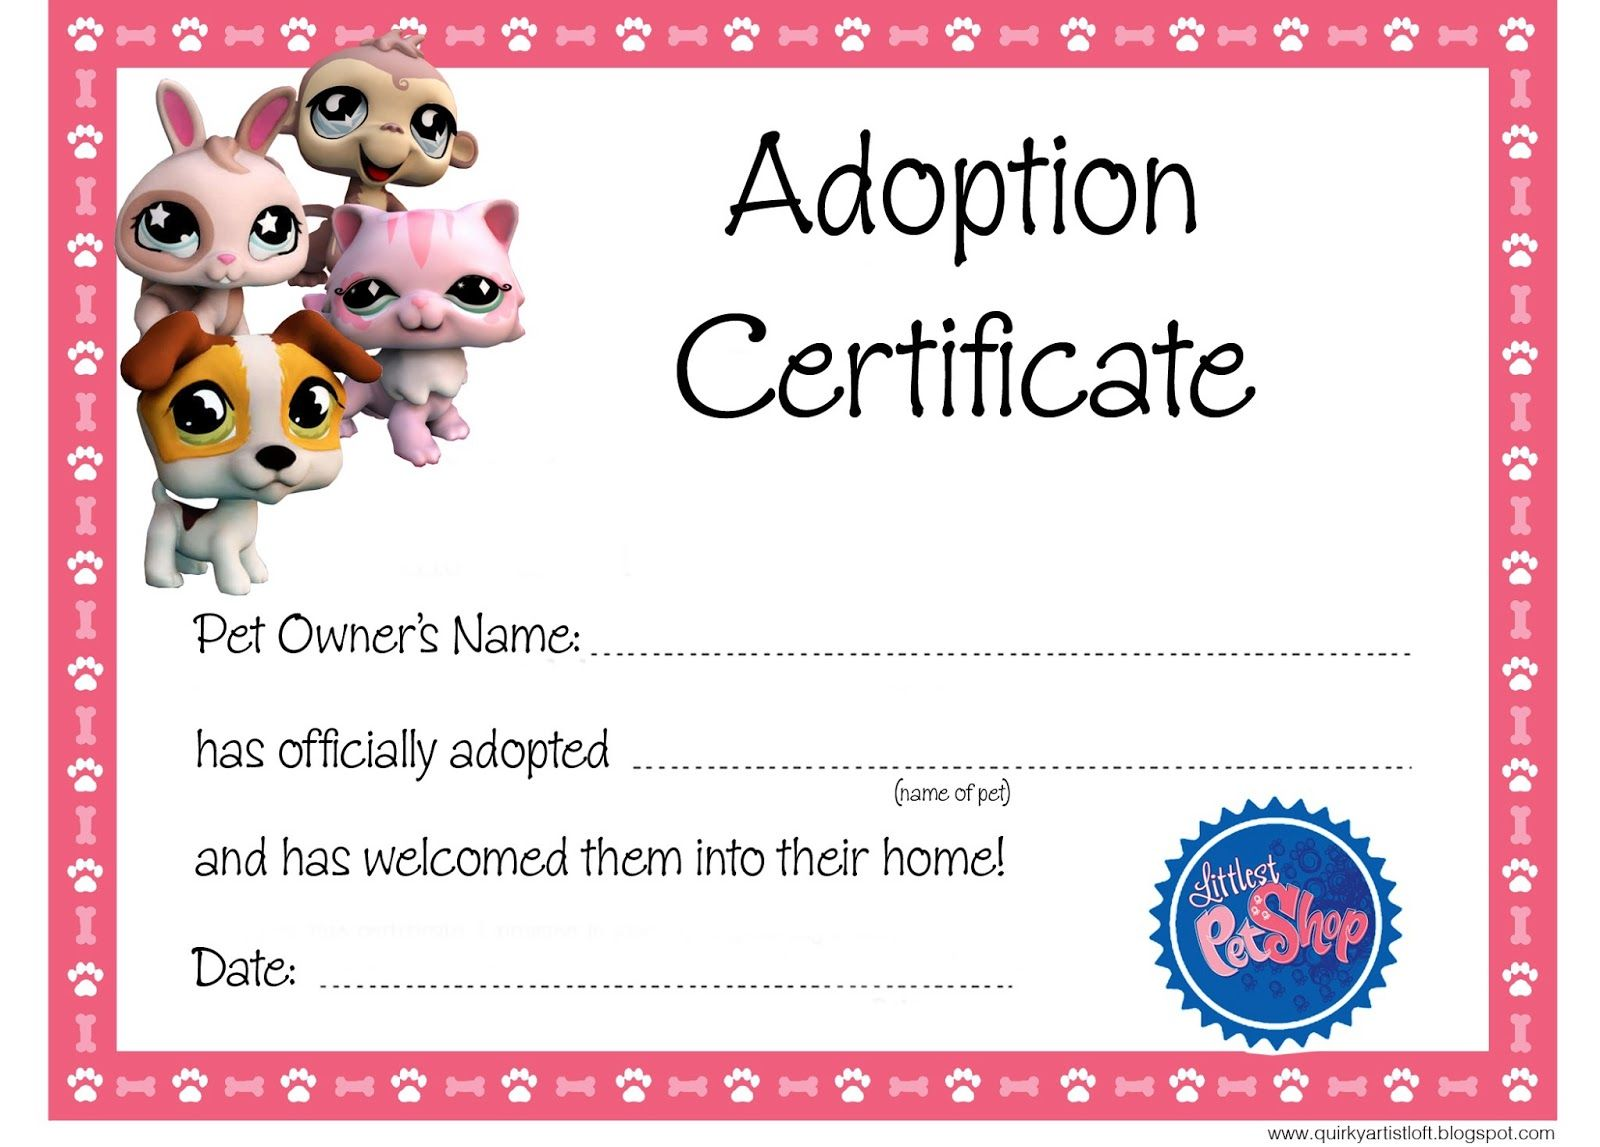 25 unique adoption certificate ideas on pinterest paws adoption quirky artist loft littlest pet shop party free adoption certificate yadclub Gallery